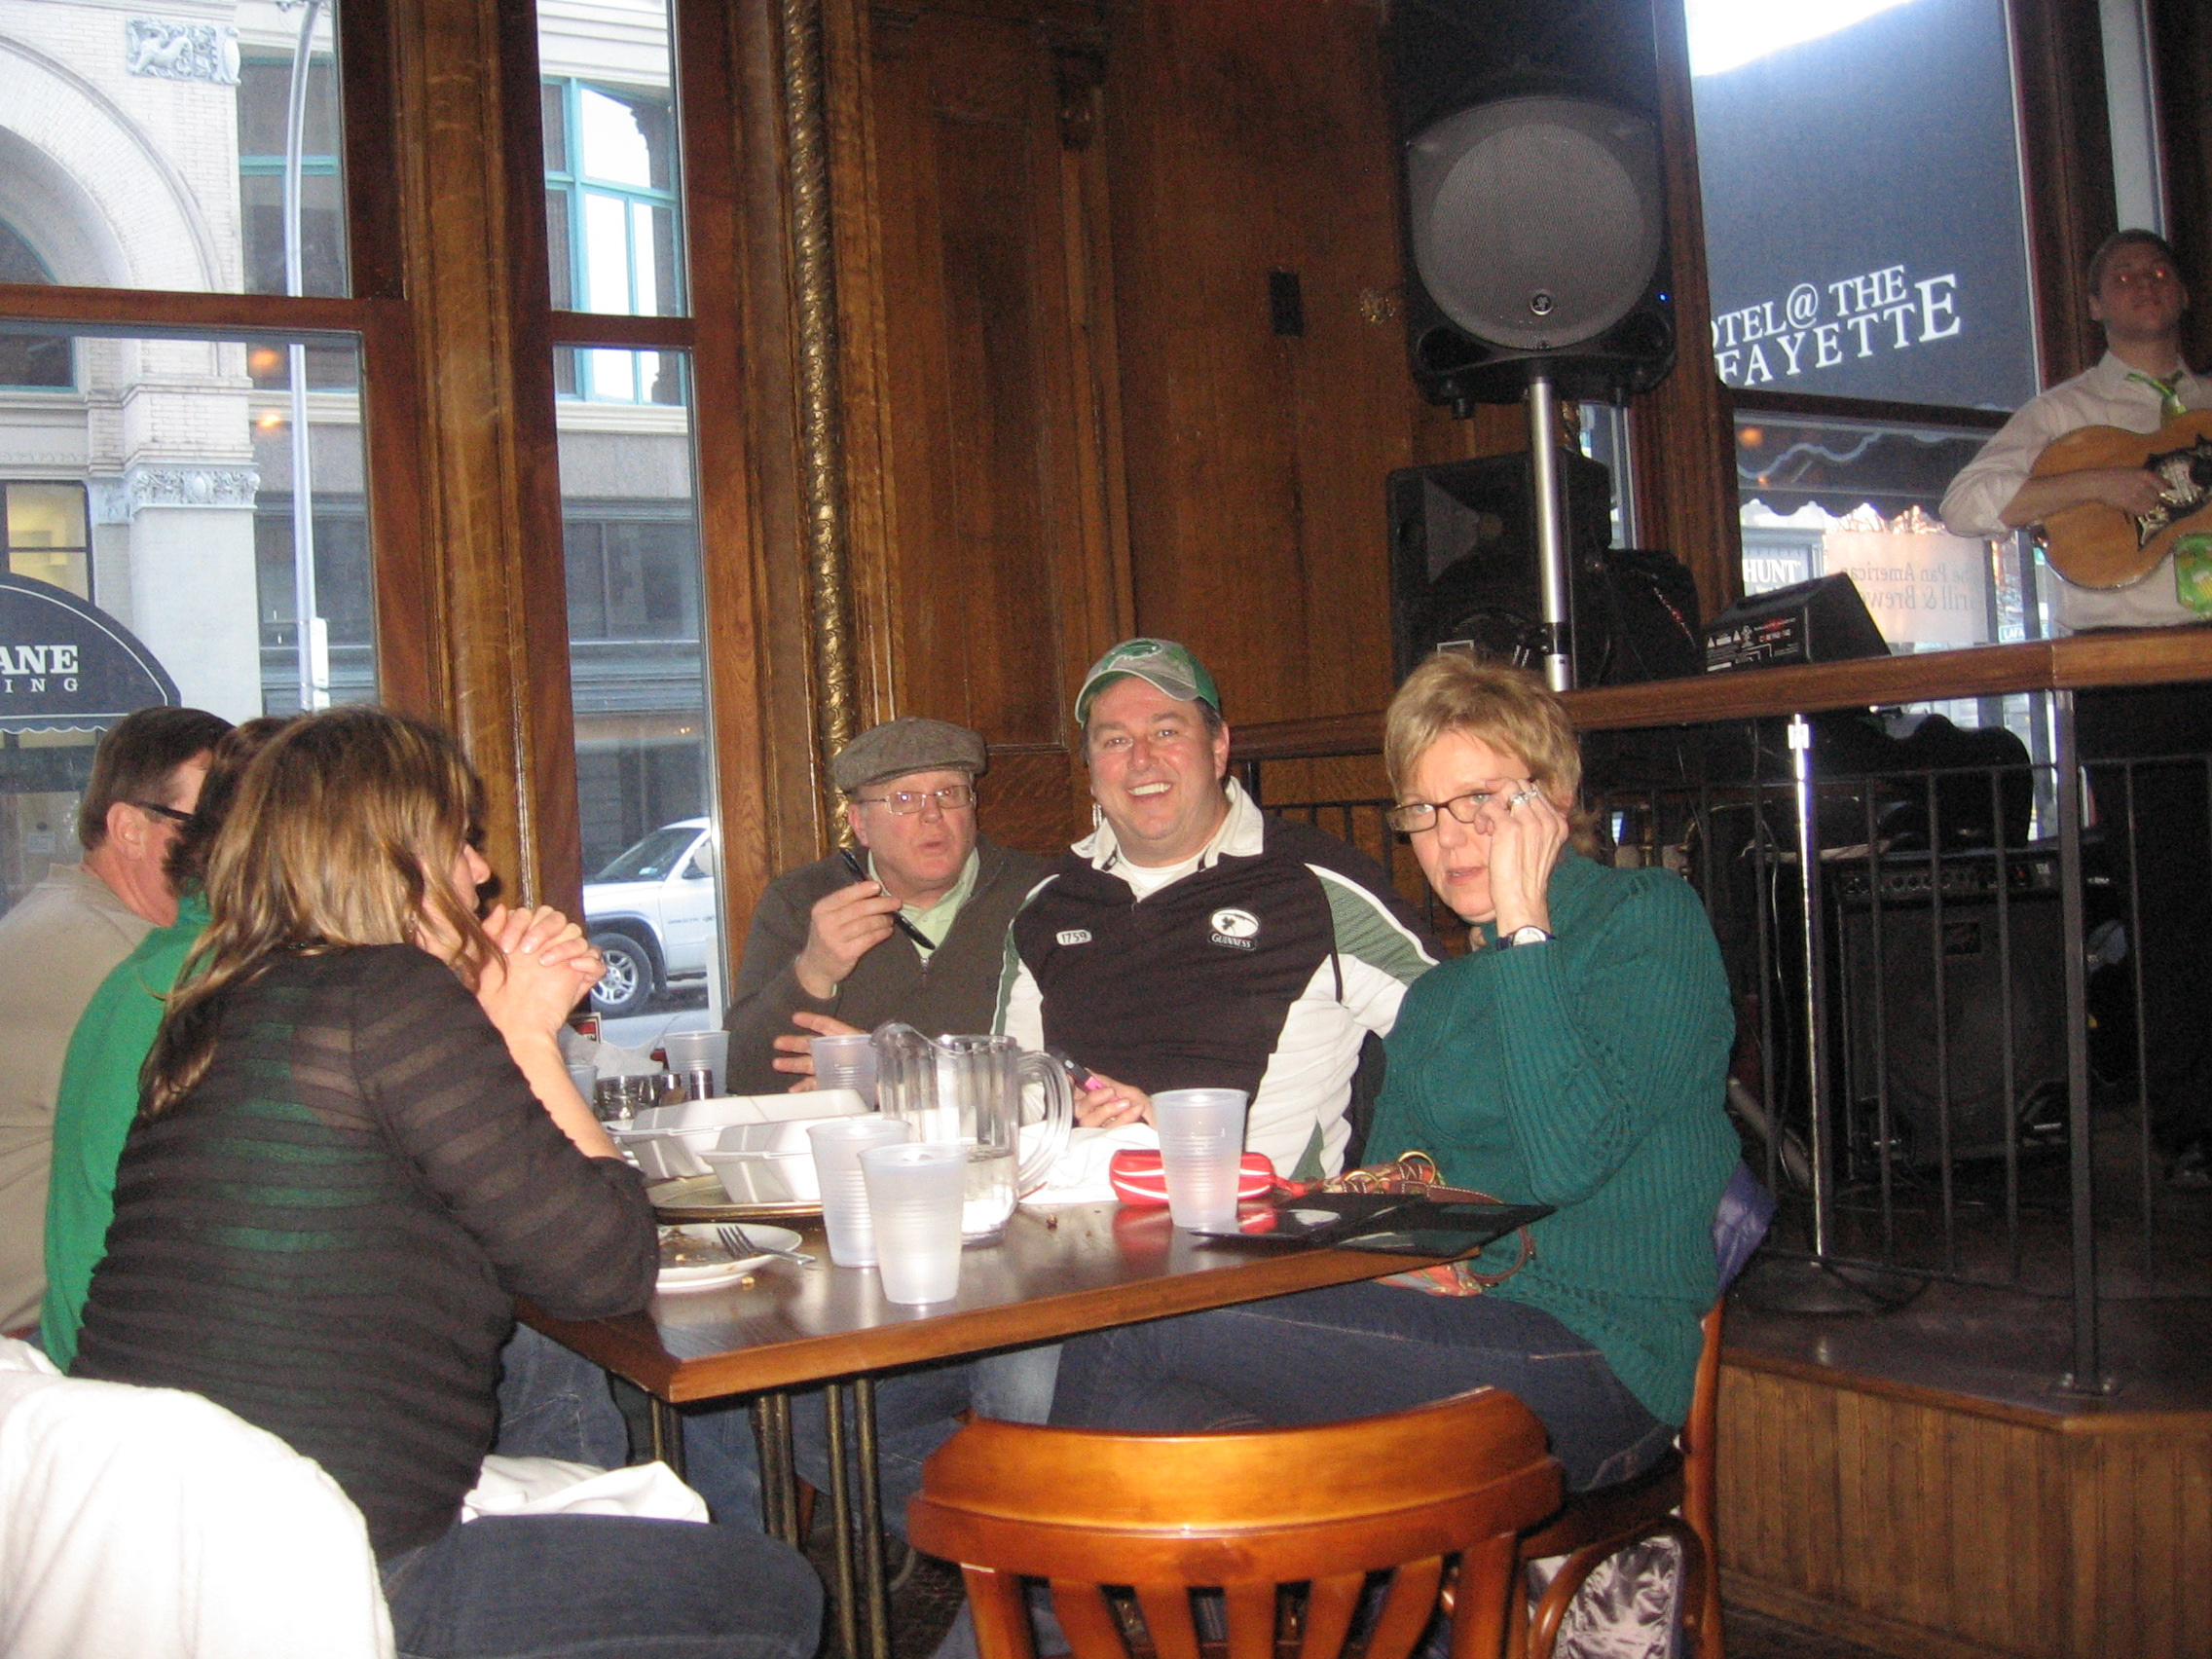 Lafayette Hotel - Buffalo - Pan AM Grill & Brewery - St. Pat's Post Parade Party